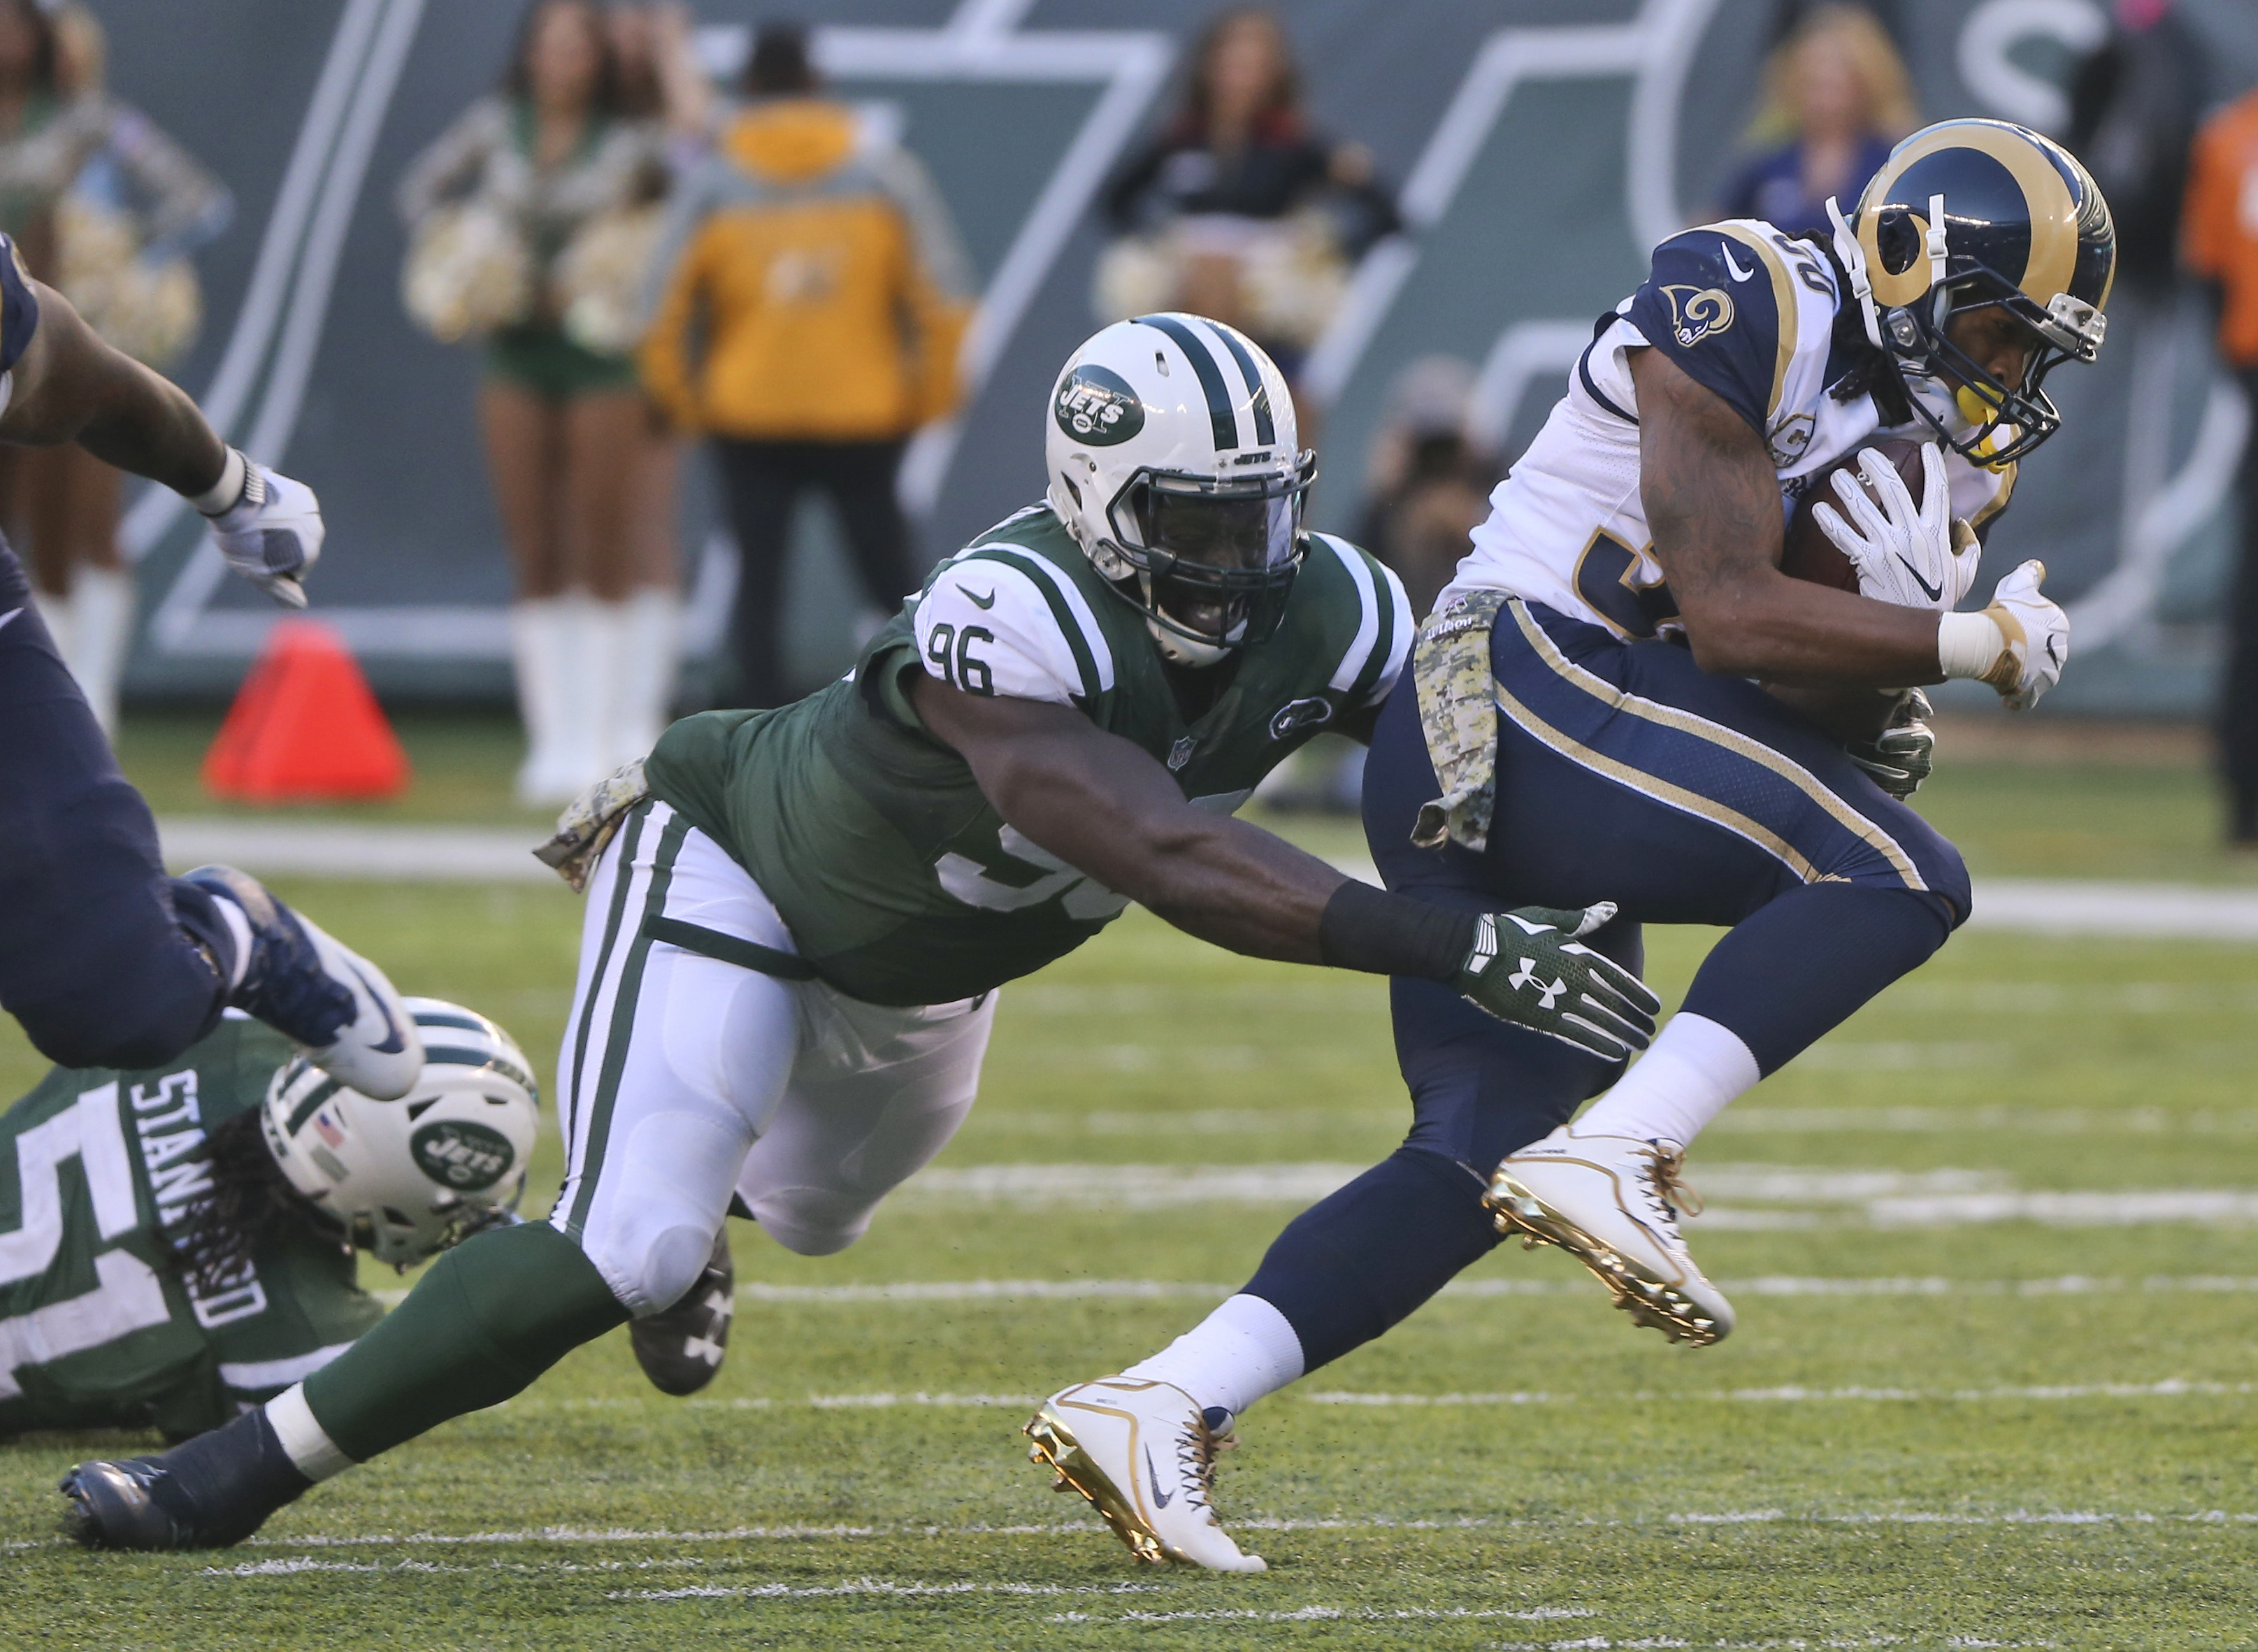 FILE - In this Nov. 13, 2016, file photo, Los Angeles Rams running back Todd Gurley (30) is tackled by New York Jets defensive end Muhammad Wilkerson (96) during an NFL football game in East Rutherford, N.J. Wilkerson knew something wasn't quite right wit